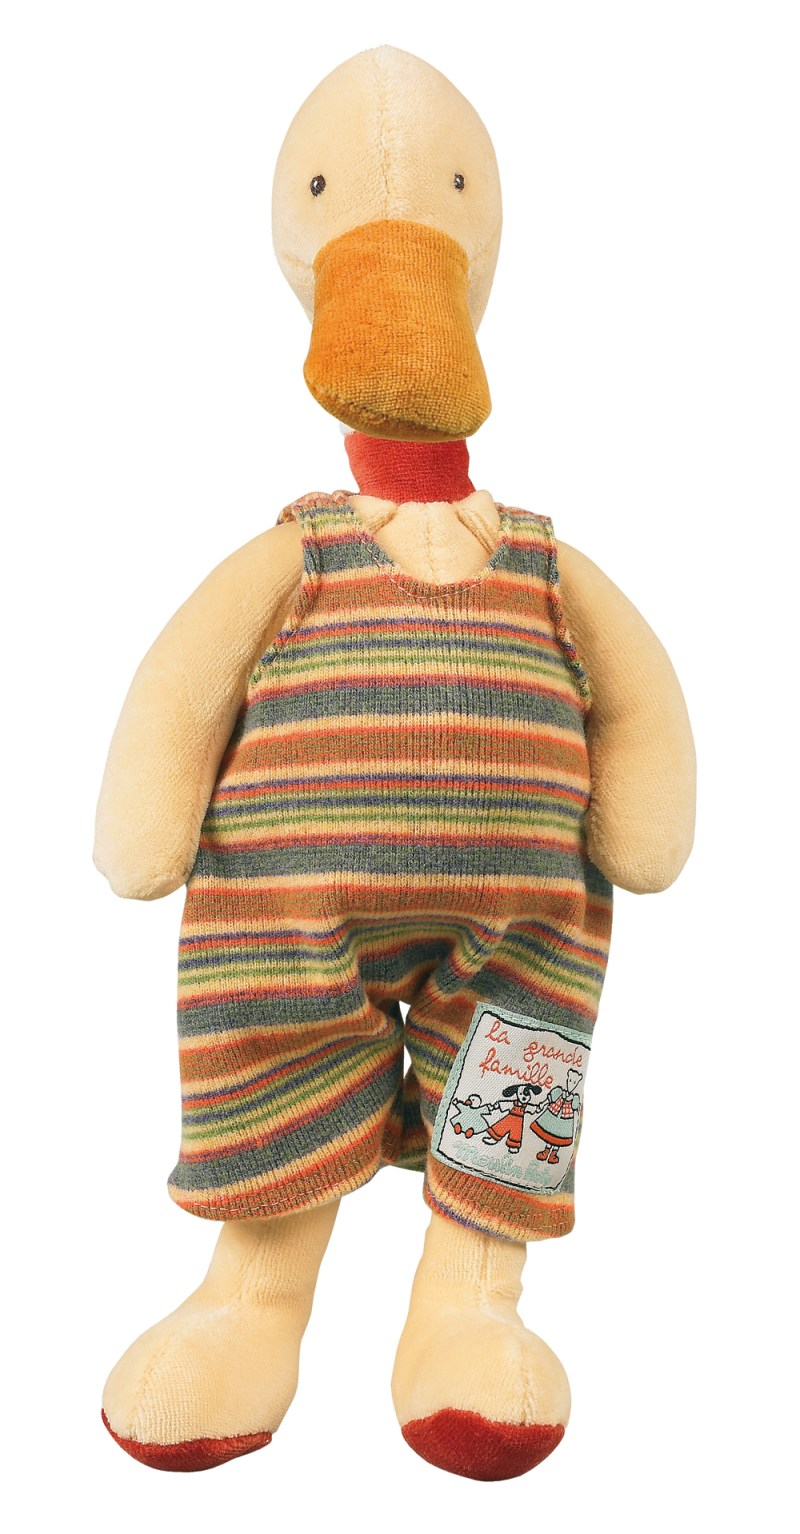 la grande famille amedee the duck old style clothes